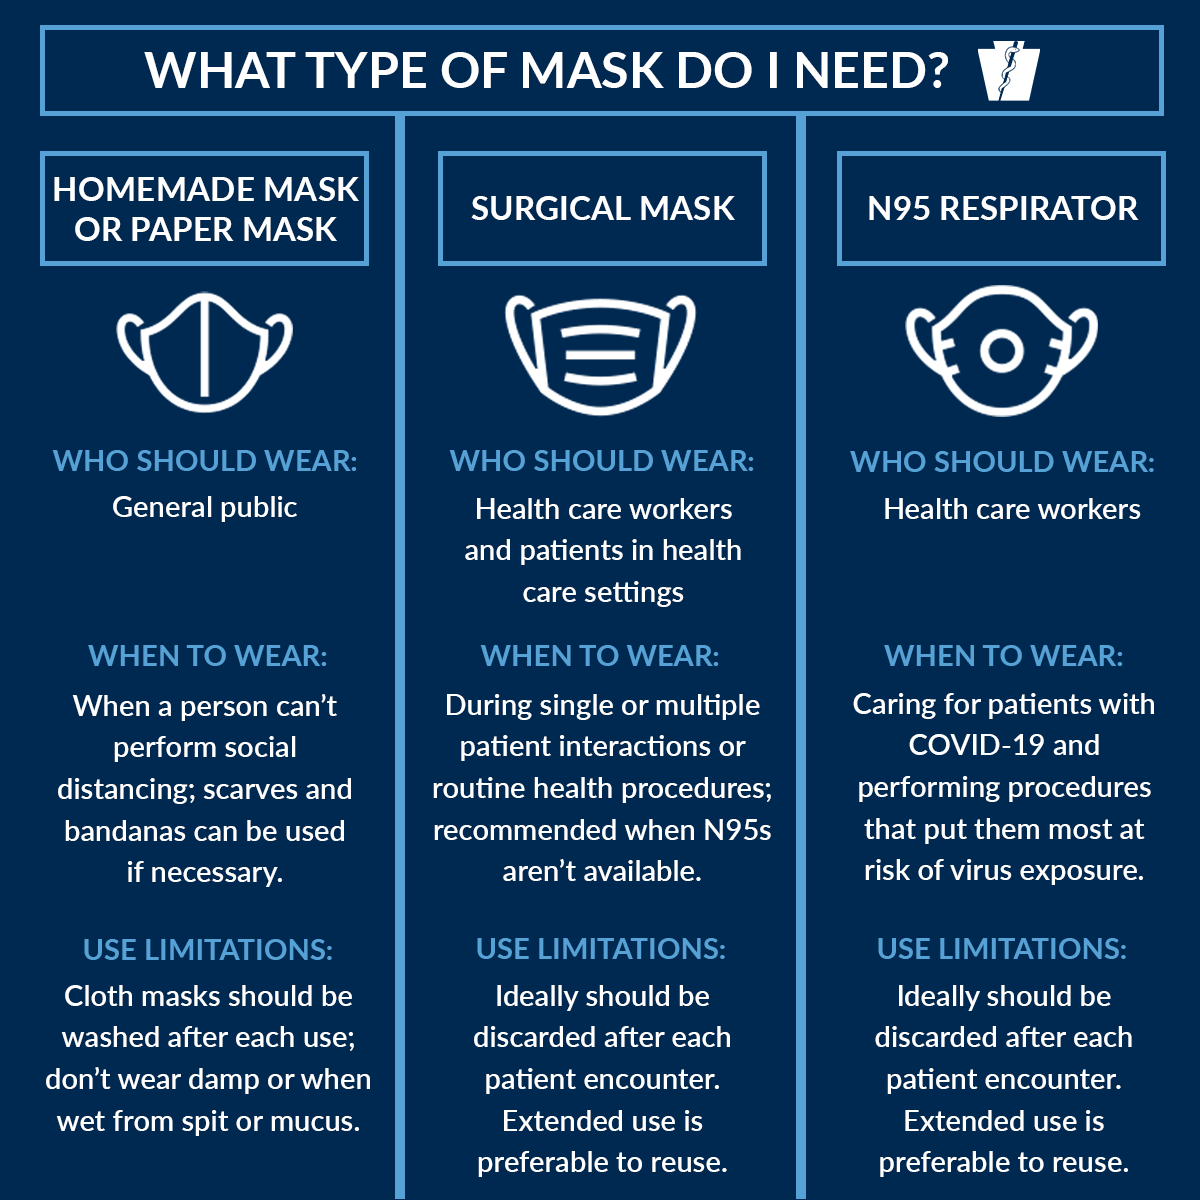 Types of masks